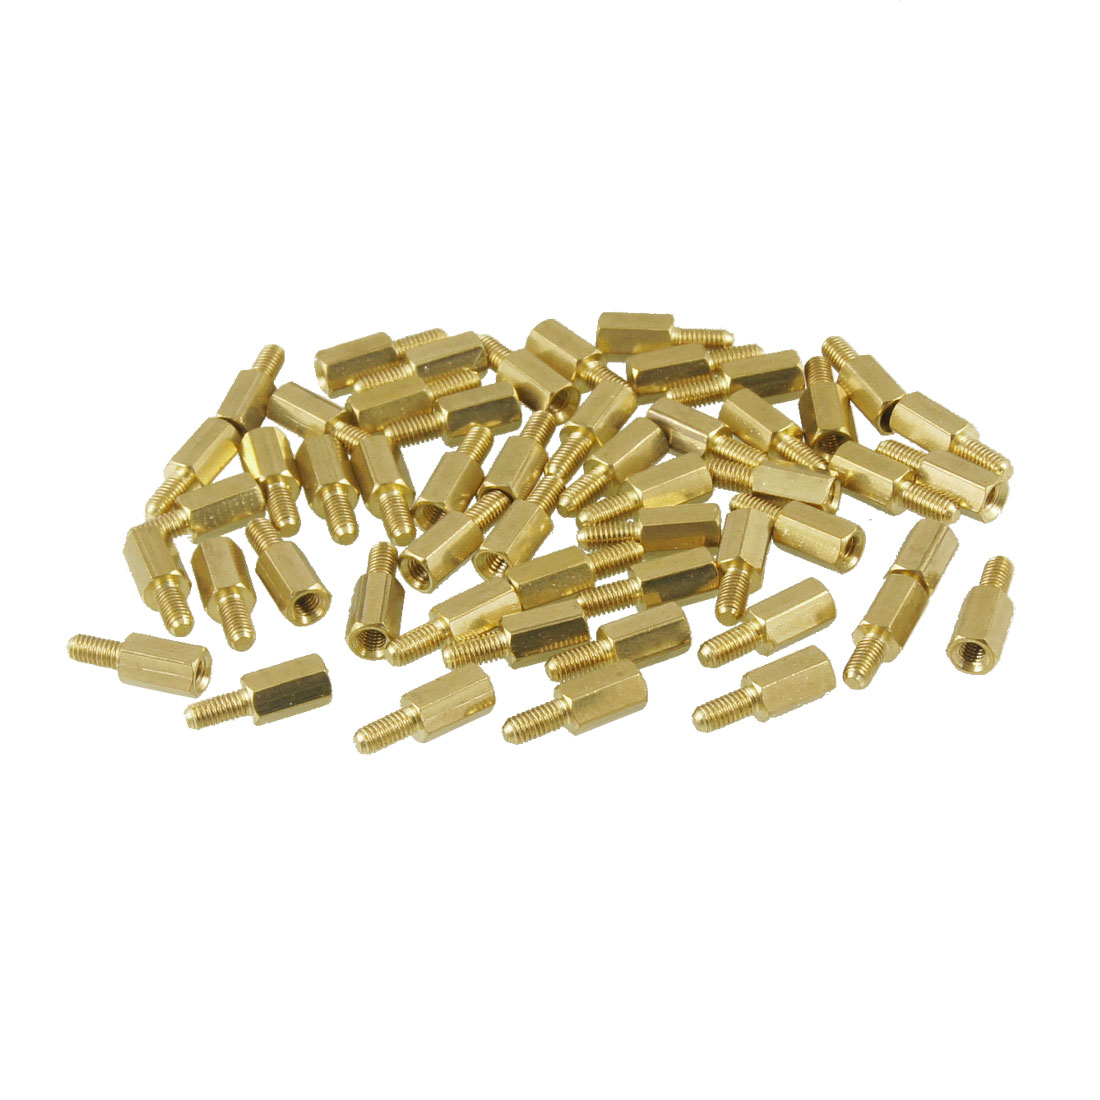 M3 Male x M3 Female 14mm Length Brass Screw Hexagonal Standoff Spacers 50 Pcs